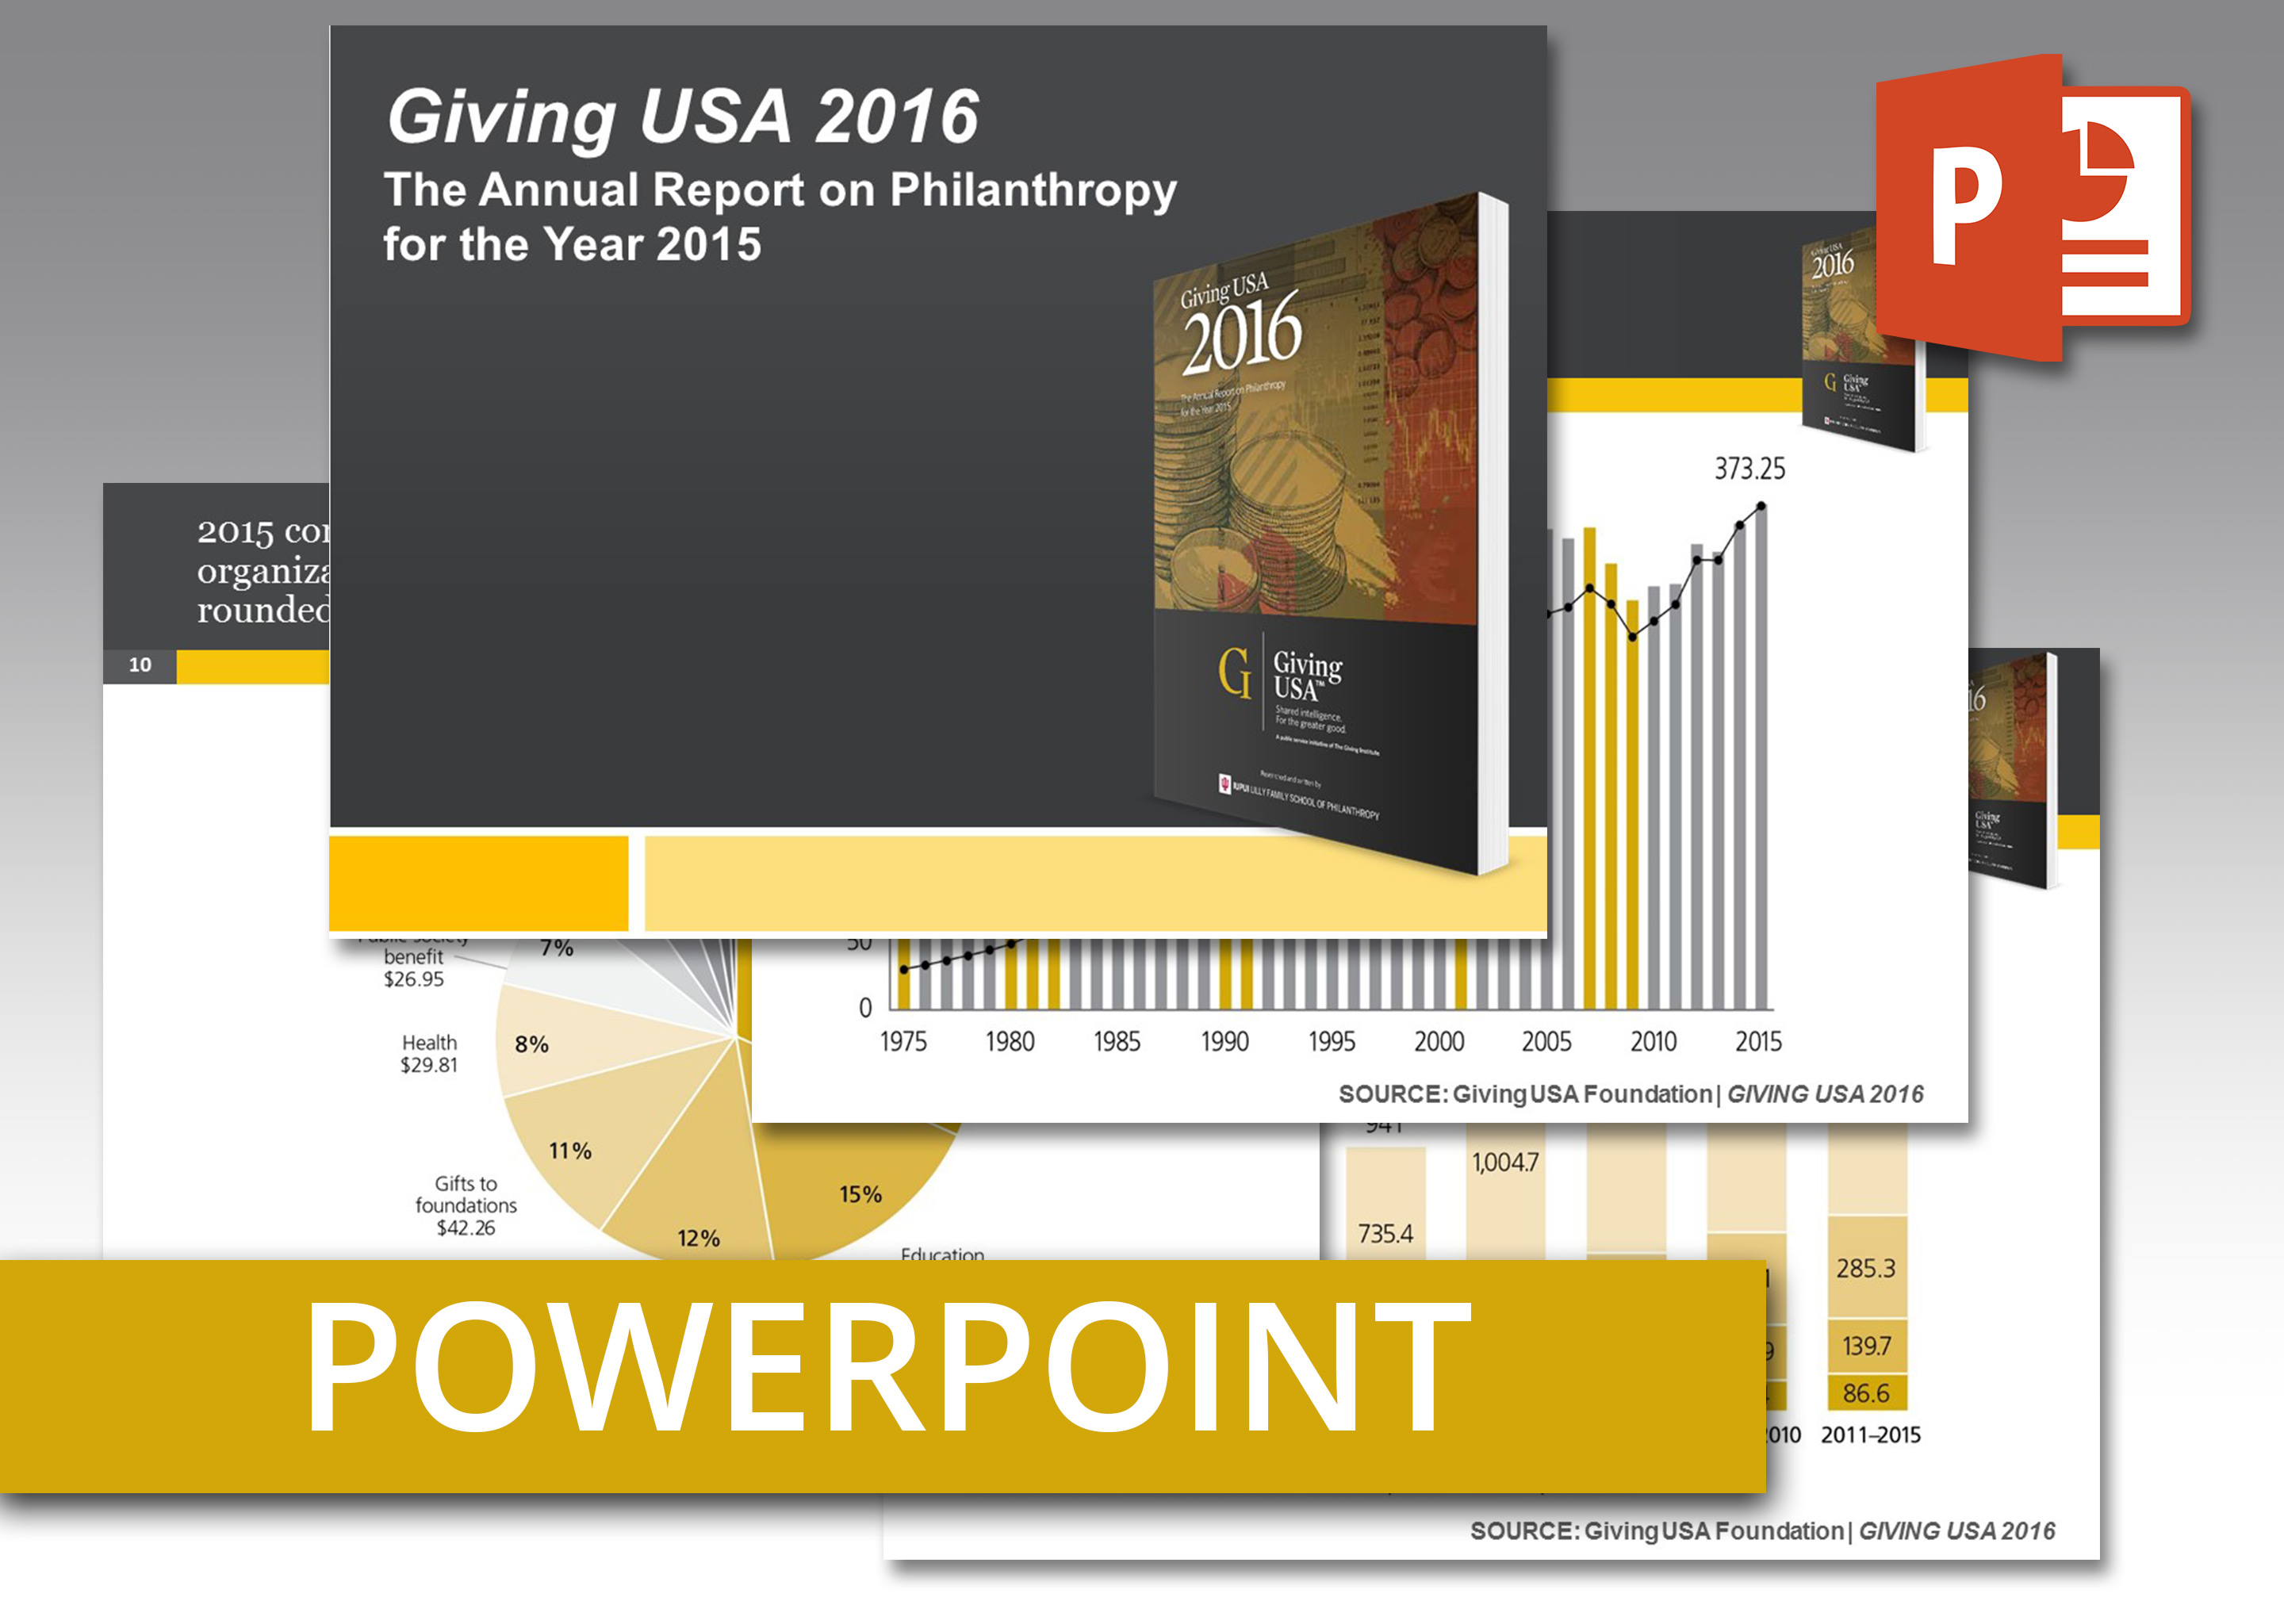 Usdgus  Sweet Giving Usa  Powerpoint An Easytouse Presentation Of Report  With Goodlooking Giving Usa  Powerpoint An Easytouse Presentation Of Report Findings Including Talking Points With Appealing Free Powerpoint No Download Also Free Themes Powerpoint In Addition Microsoft Powerpoint Presentation Free Download And Online Convert Pdf To Powerpoint As Well As Powerpoint Commercial Additionally Gant Chart Powerpoint From Givingusaorg With Usdgus  Goodlooking Giving Usa  Powerpoint An Easytouse Presentation Of Report  With Appealing Giving Usa  Powerpoint An Easytouse Presentation Of Report Findings Including Talking Points And Sweet Free Powerpoint No Download Also Free Themes Powerpoint In Addition Microsoft Powerpoint Presentation Free Download From Givingusaorg